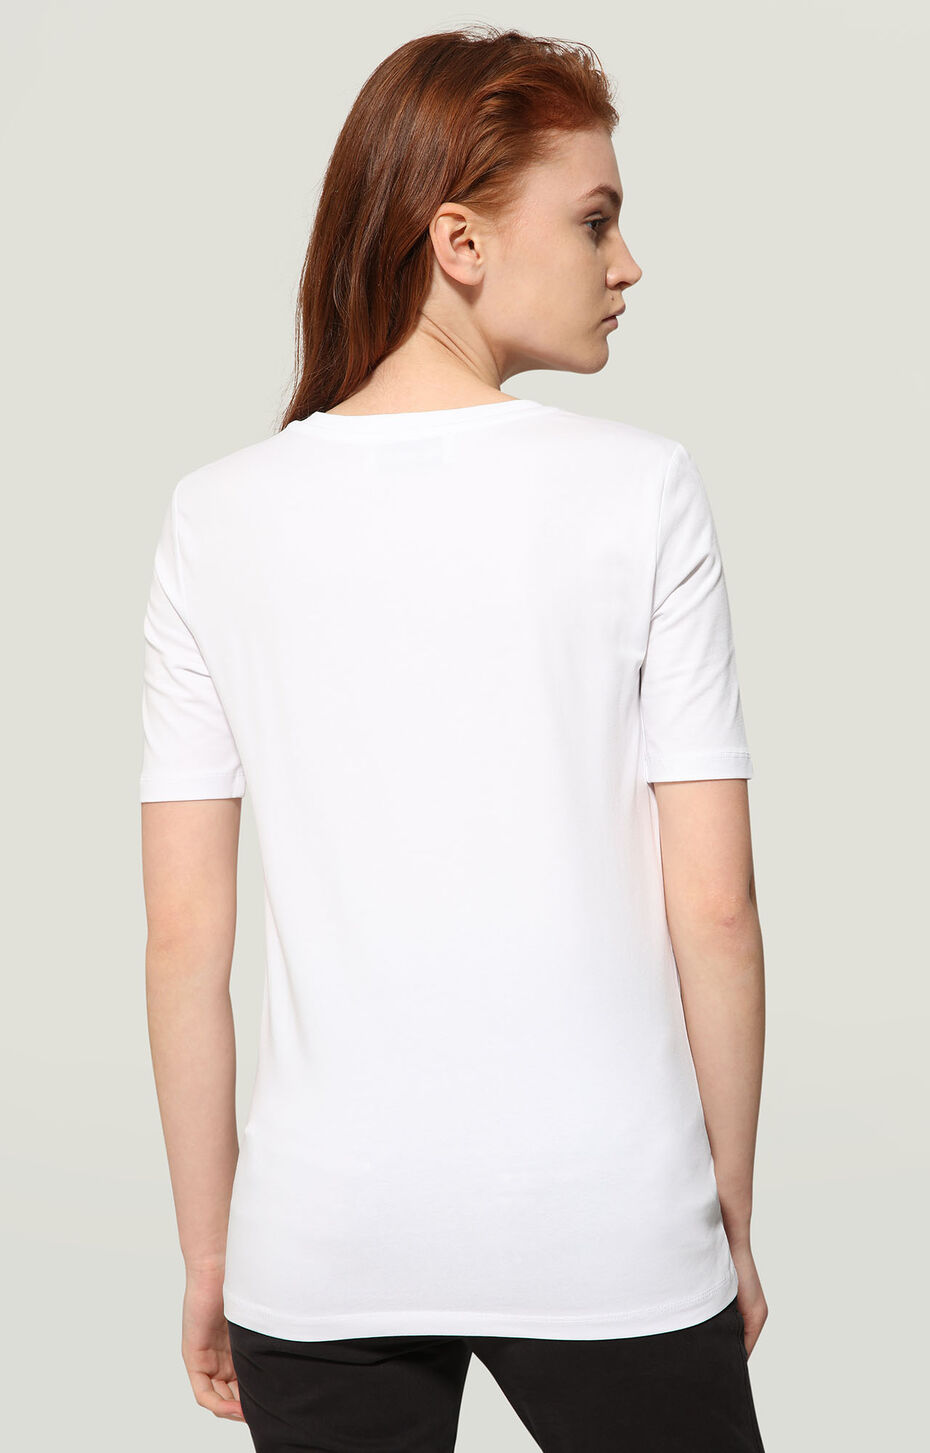 T-SHIRT, Blanco, hi-res-1